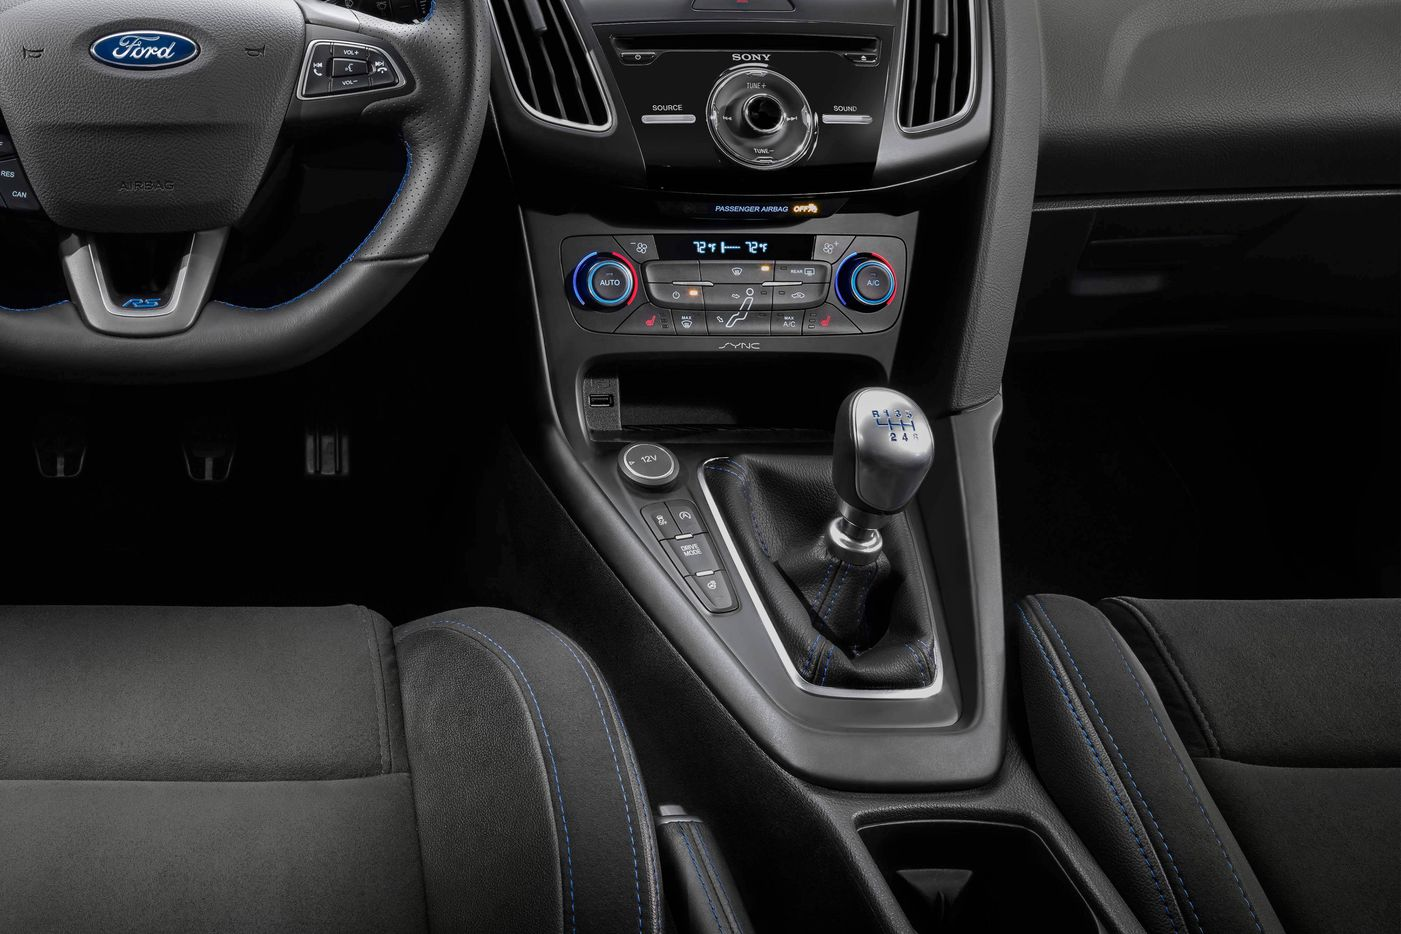 The interior of the 2017 Ford Focus RS comes standard with tilt steering wheel, leather-wrapped steering wheel, dual power point plug-ins and 60-40 split rear seats.